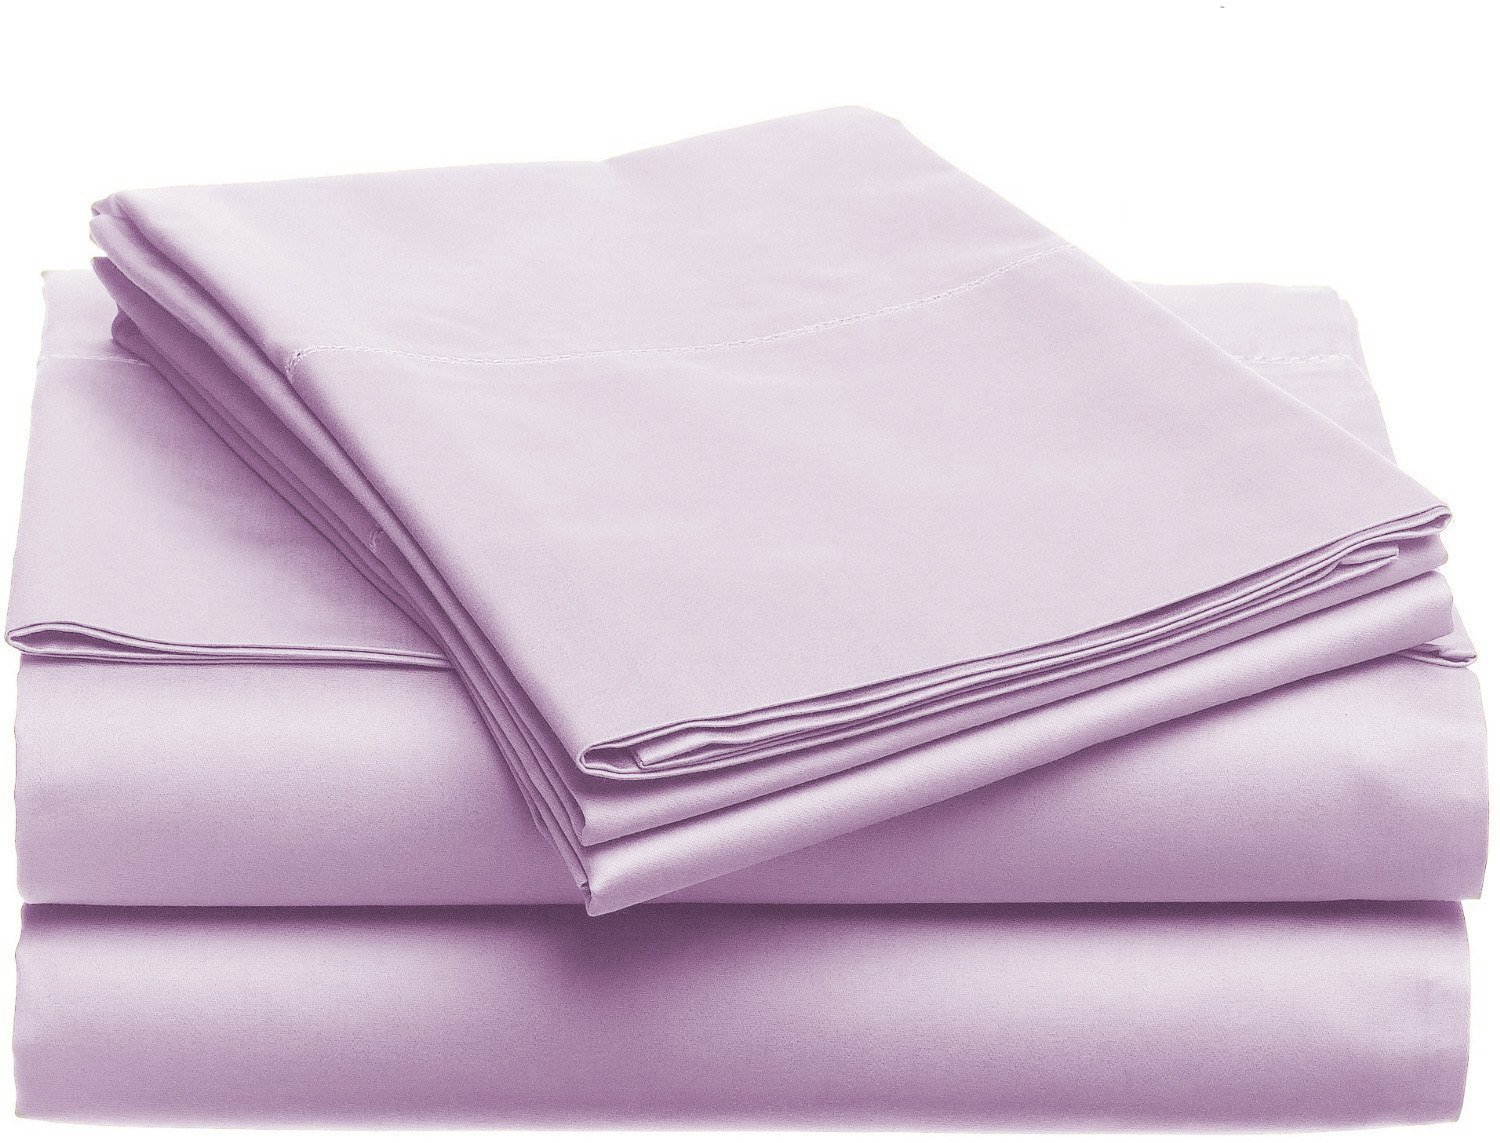 Luxury-Home-Super-Soft-1600-Series-Double-Brushed-6-Pcs-Bed-Sheets-Set thumbnail 31